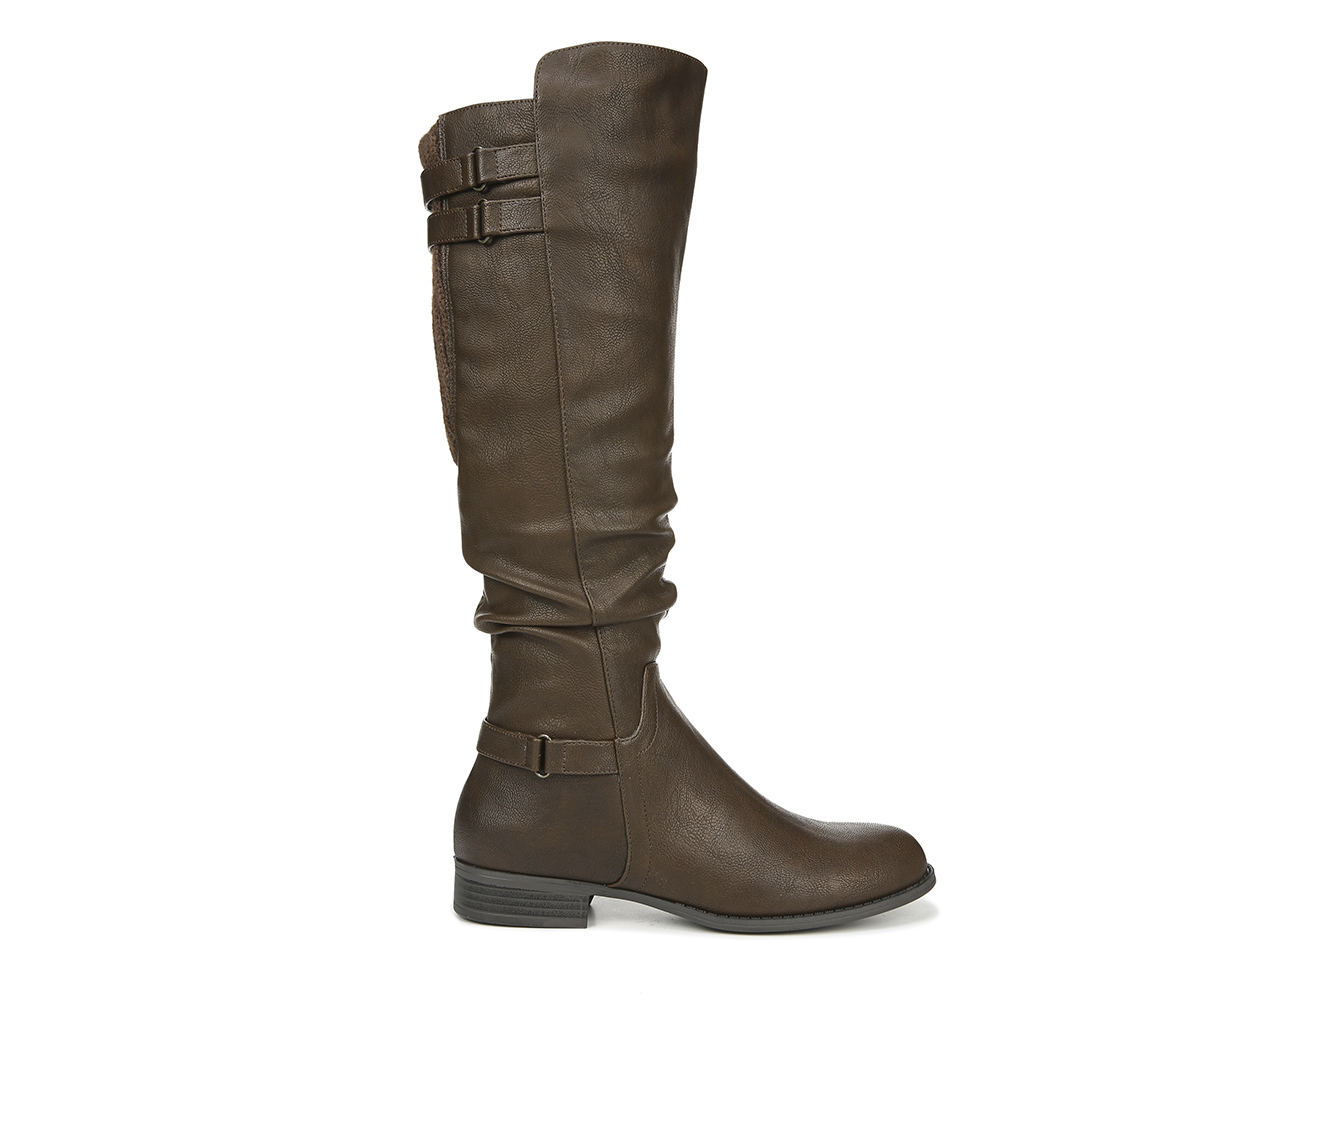 LifeStride Faunia Women's Boots (Brown - Faux Leather)